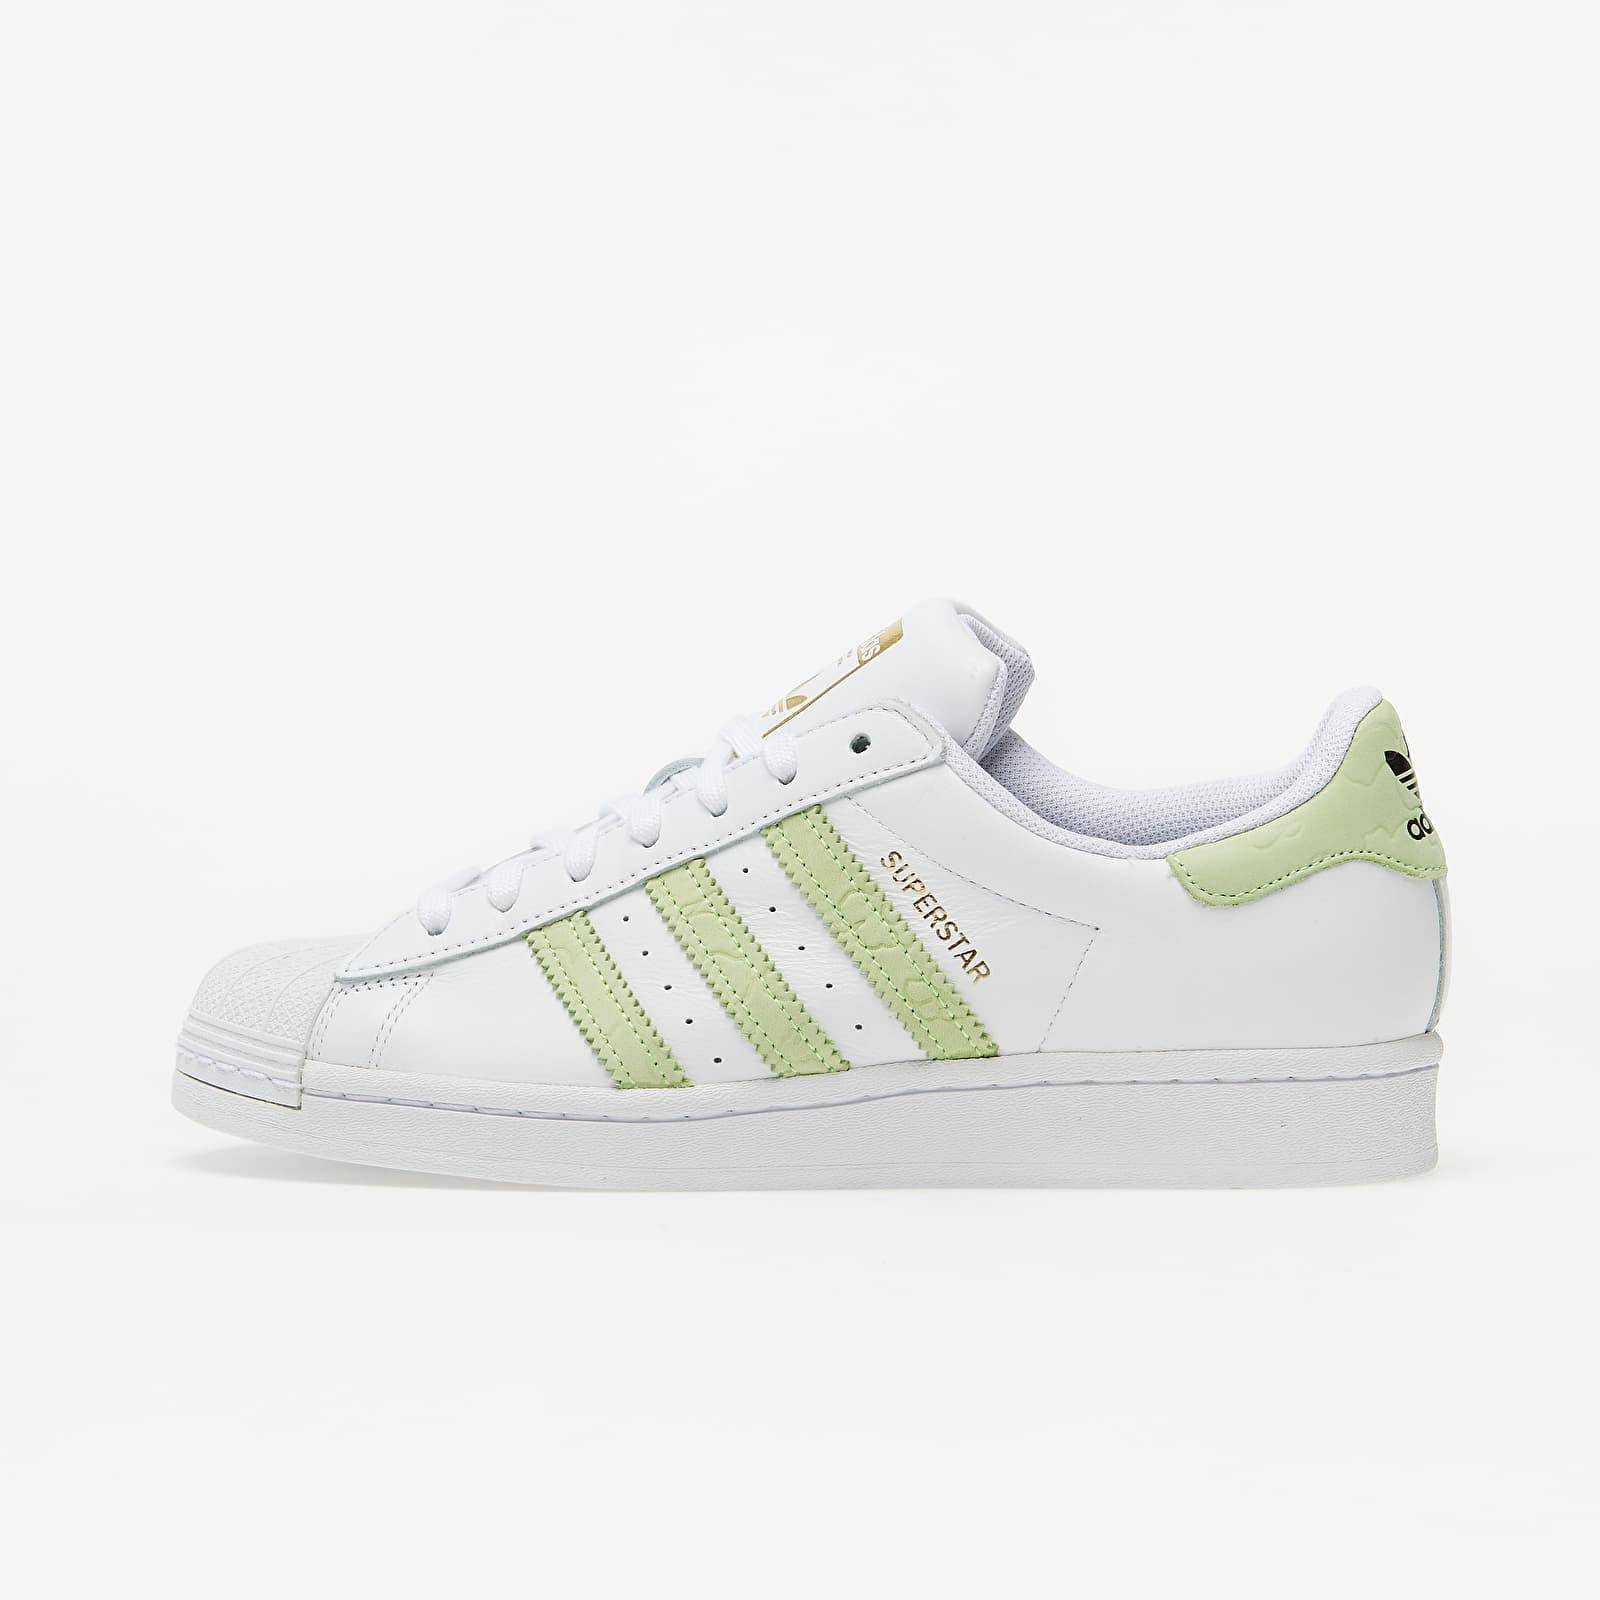 adidas Superstar W Ftw White/ Hi-Res Yellow/ Gold Metalic FW3568